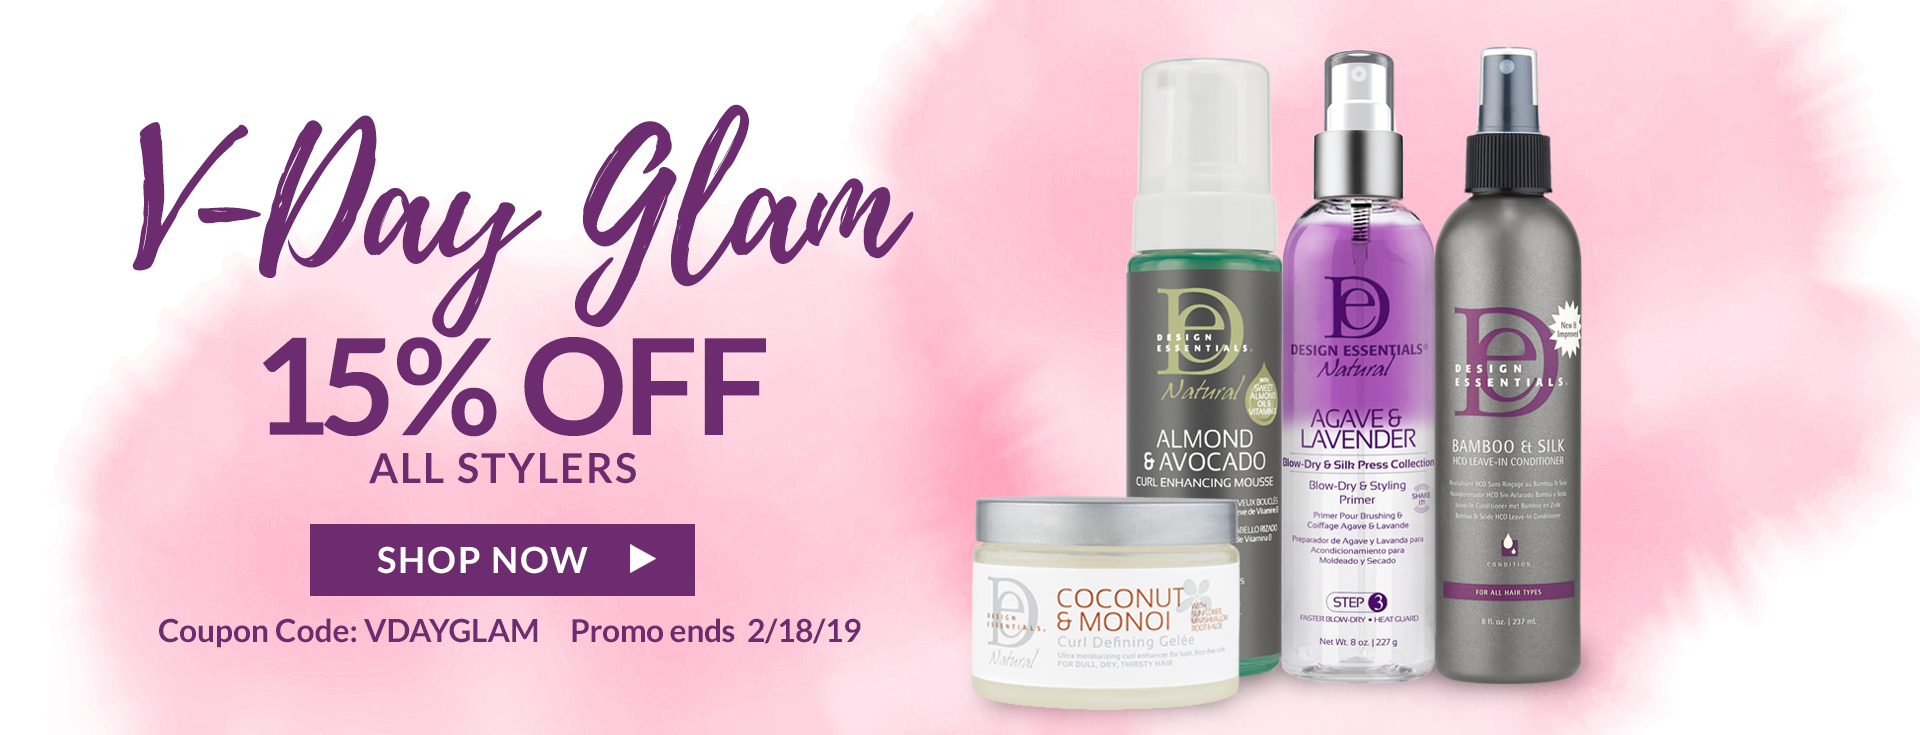 15% Off All Styling Products